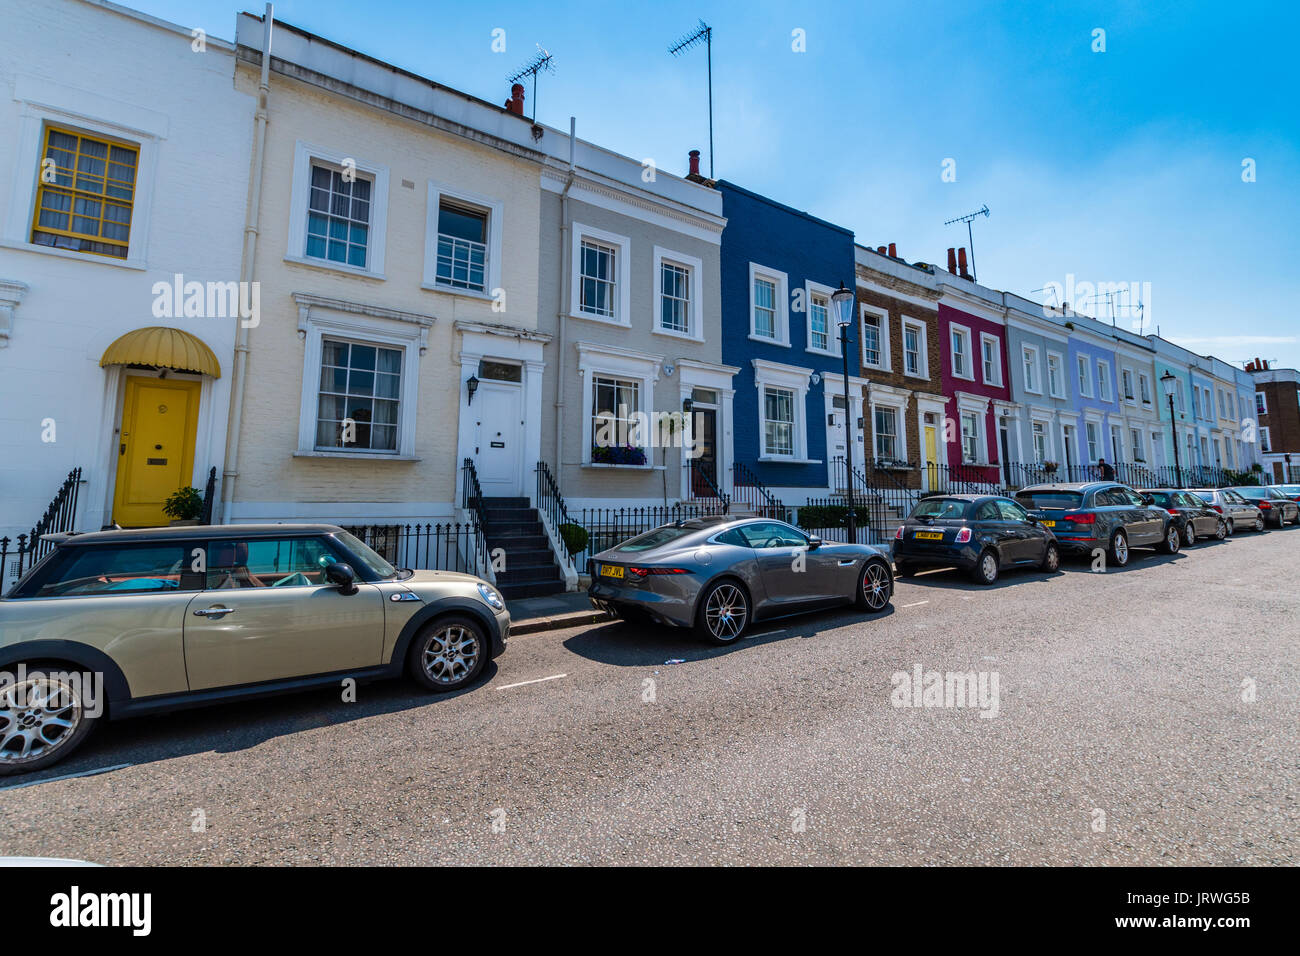 Hillgate Place in Notting Hill London - Stock Image